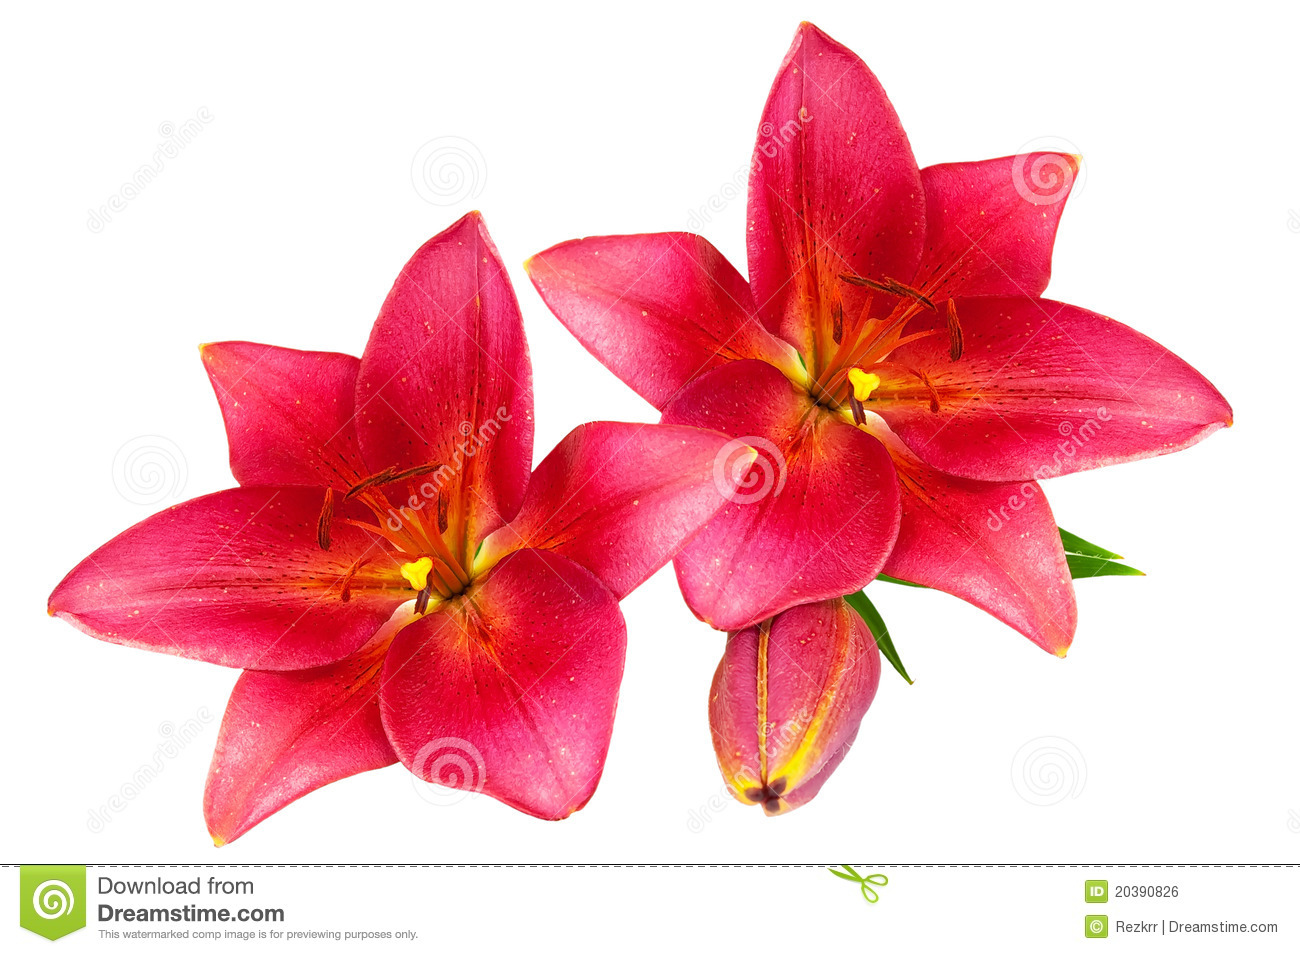 red lilies royalty free stock image  image, Natural flower